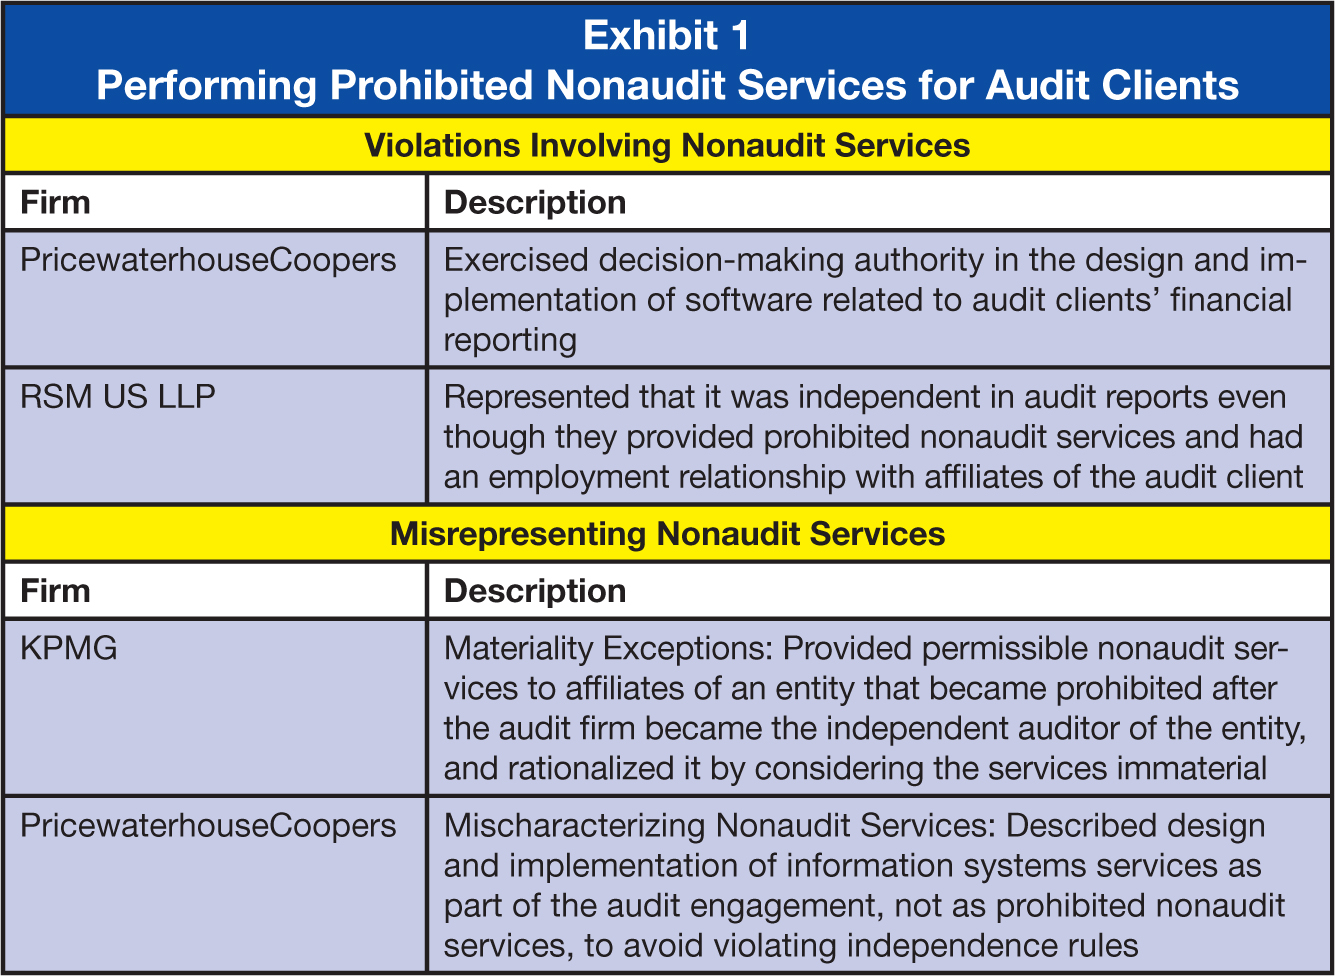 Violations Involving Nonaudit Services Firm; Description PricewaterhouseCoopers; Exercised decision-making authority in the design and implementation of software related to audit clients' financial reporting RSM US LLP; Represented that it was independent in audit reports even though they provided prohibited nonaudit services and had an employment relationship with affiliates of the audit client Misrepresenting Nonaudit Services Firm; Description KPMG; Materiality Exceptions: Provided permissible nonaudit services to affiliates of an entity that became prohibited after the audit firm became the independent auditor of the entity, and rationalized it by considering the services immaterial PricewaterhouseCoopers; Mischaracterizing Nonaudit Services: Described design and implementation of information systems services as part of the audit engagement, not as prohibited nonaudit services, to avoid violating independence rules